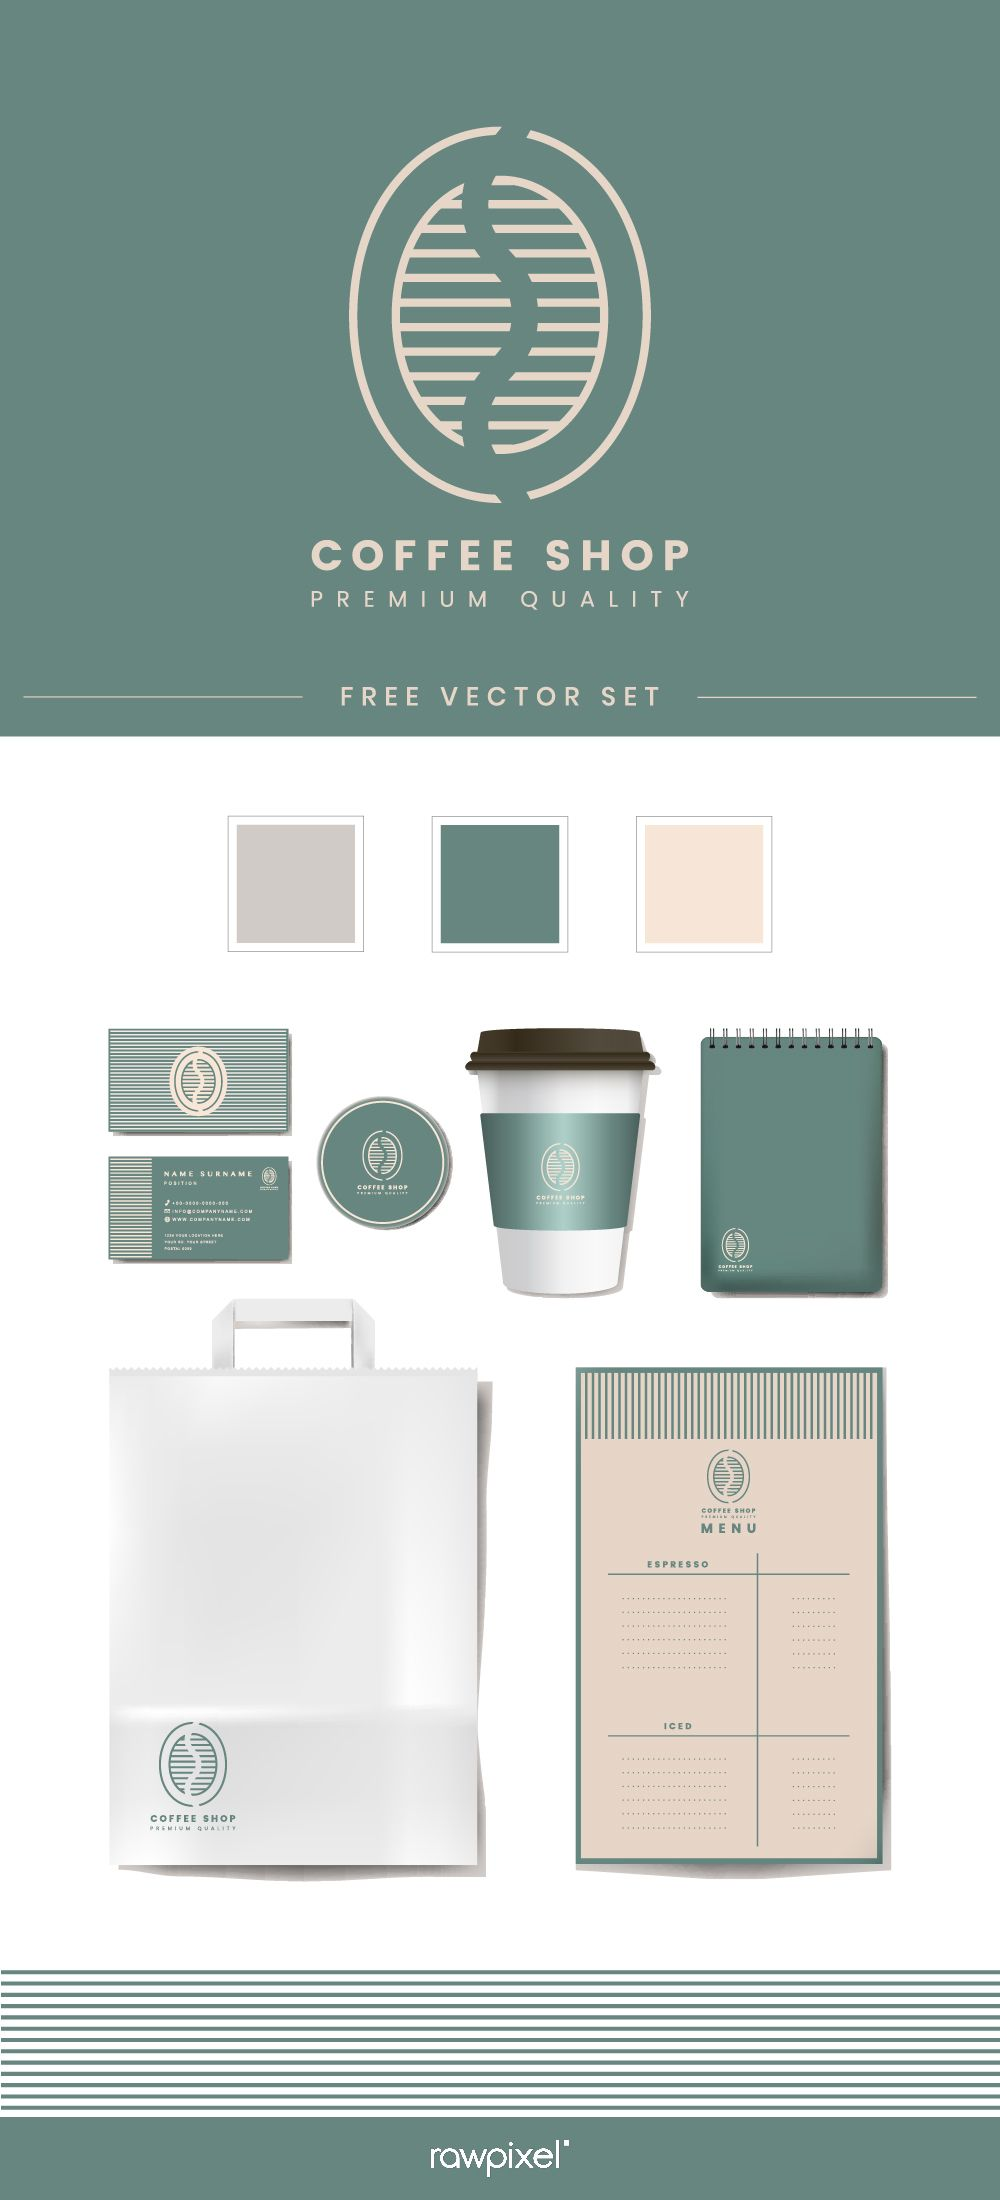 Download These Free Coffee Shop Corporate Identity Mockup Vectors